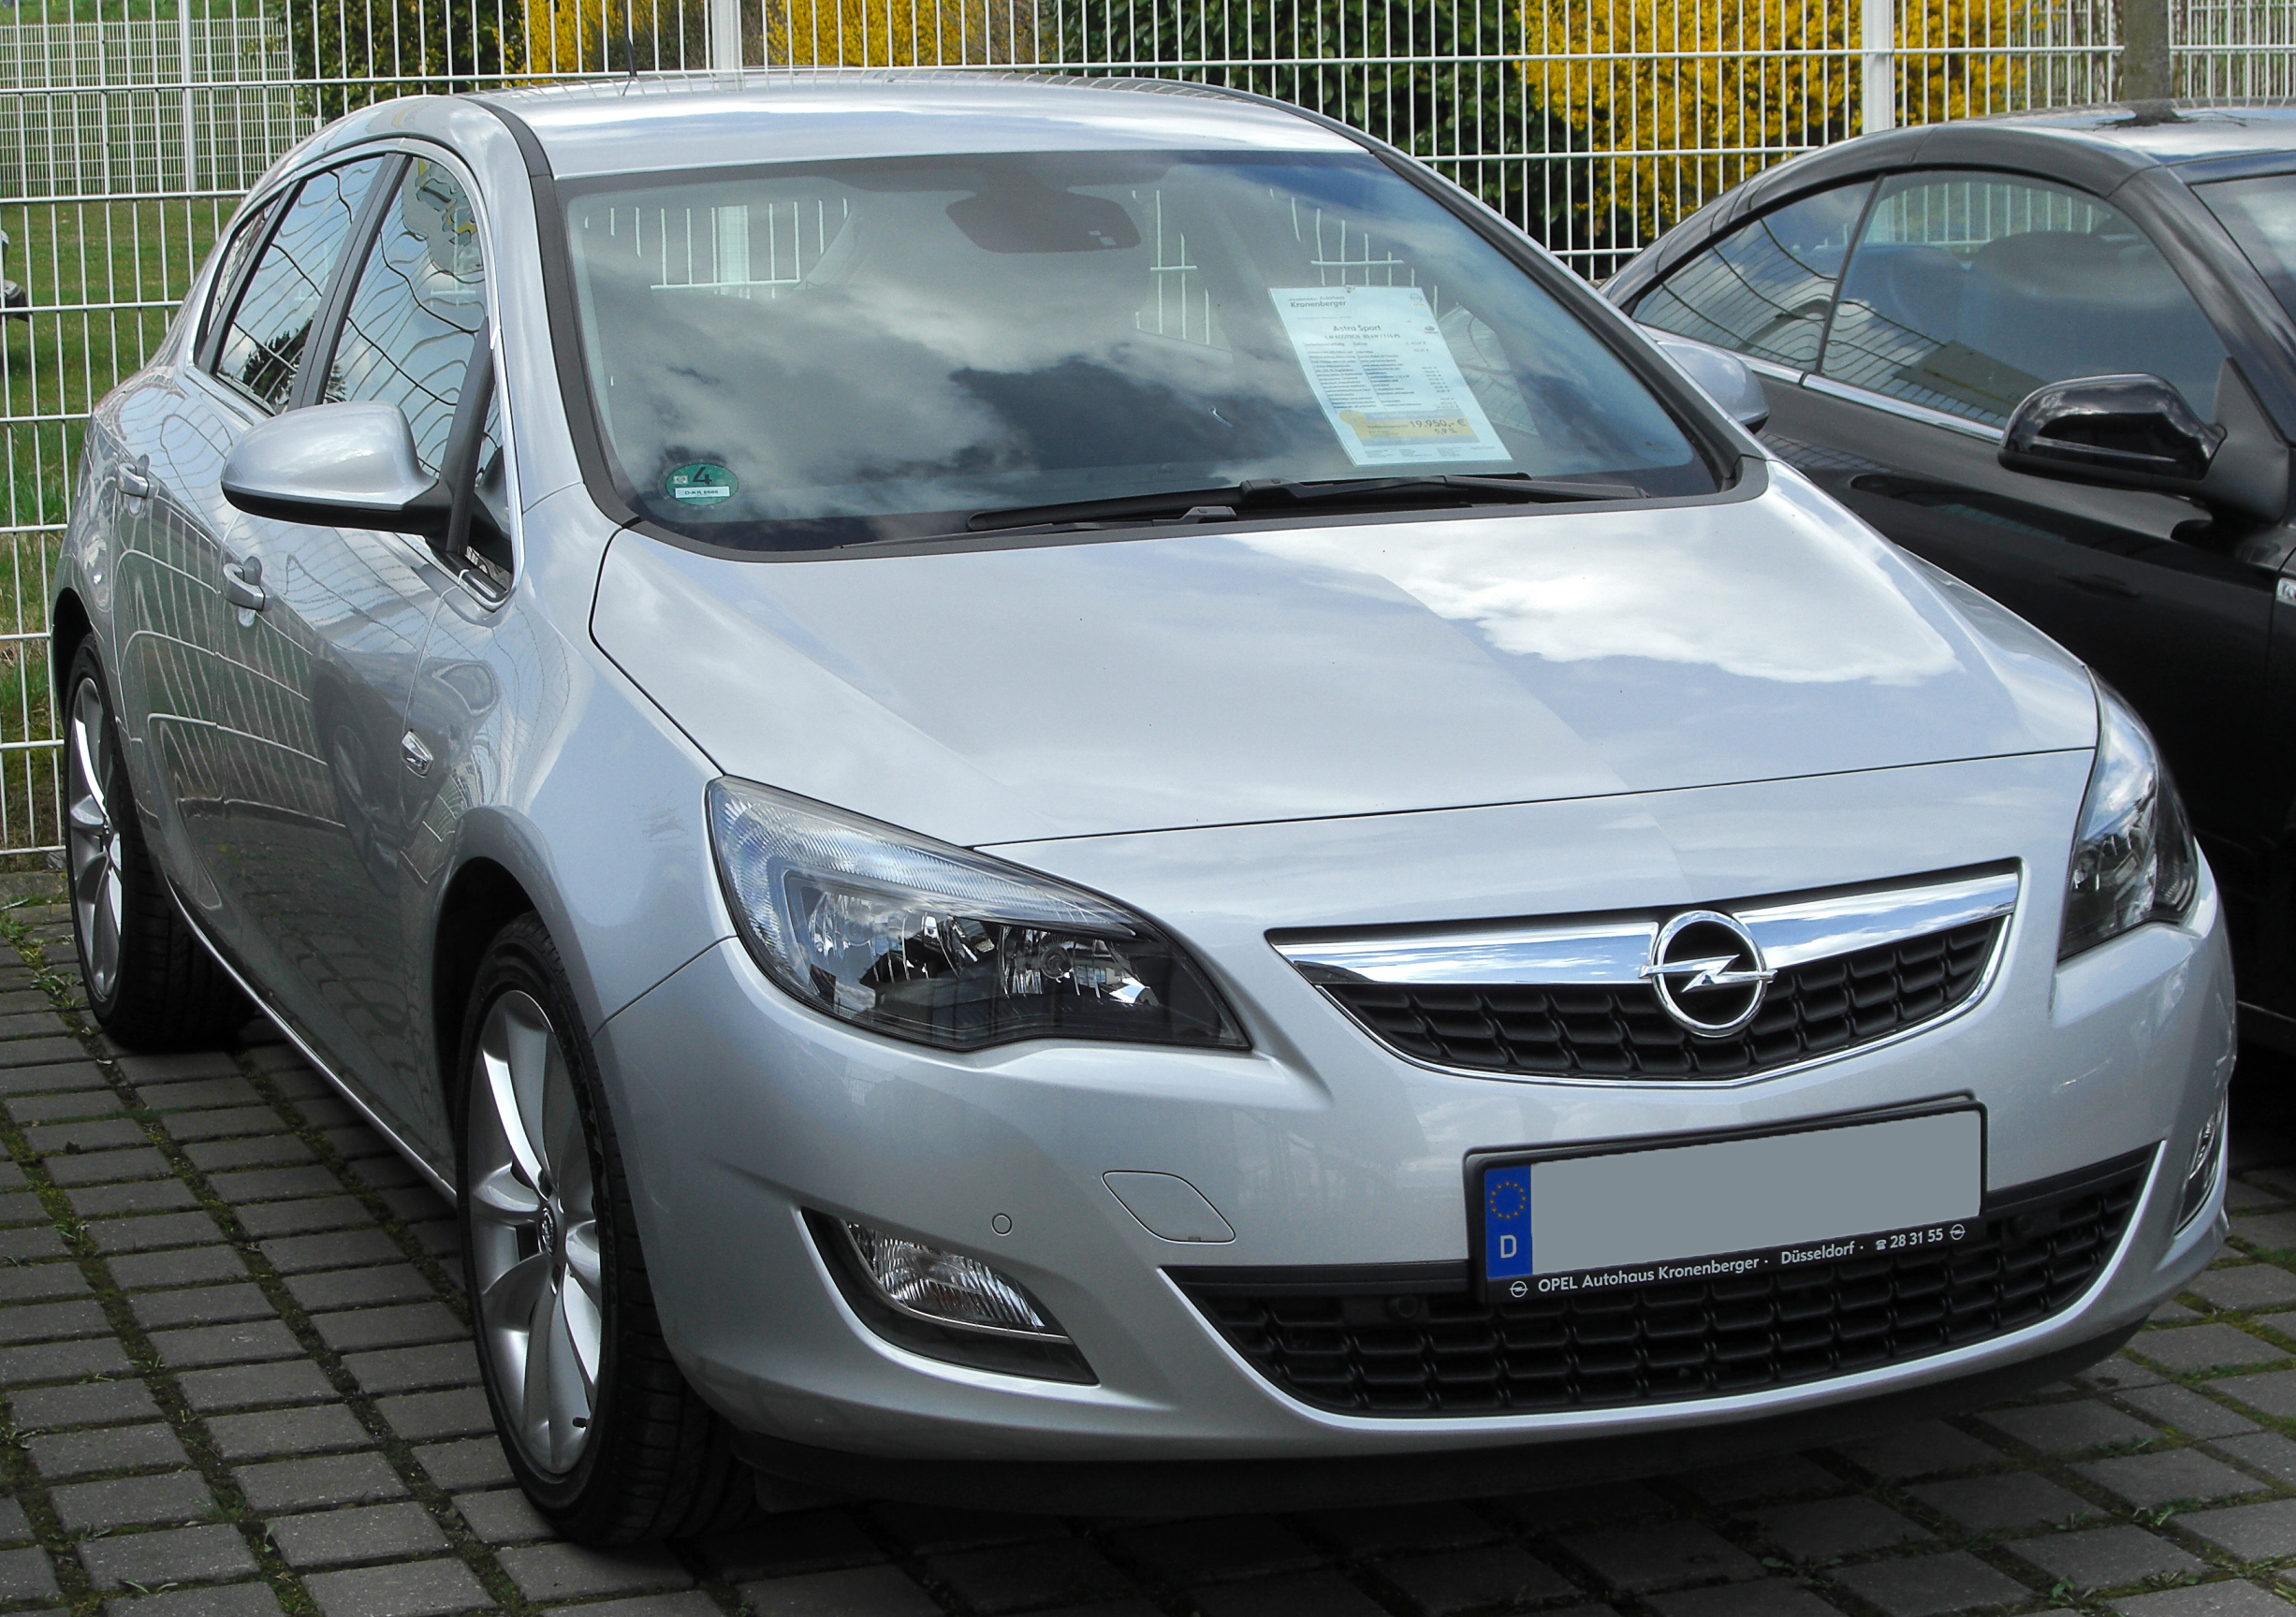 File Opel Astra J Front 20100402 Jpg Wikimedia Commons